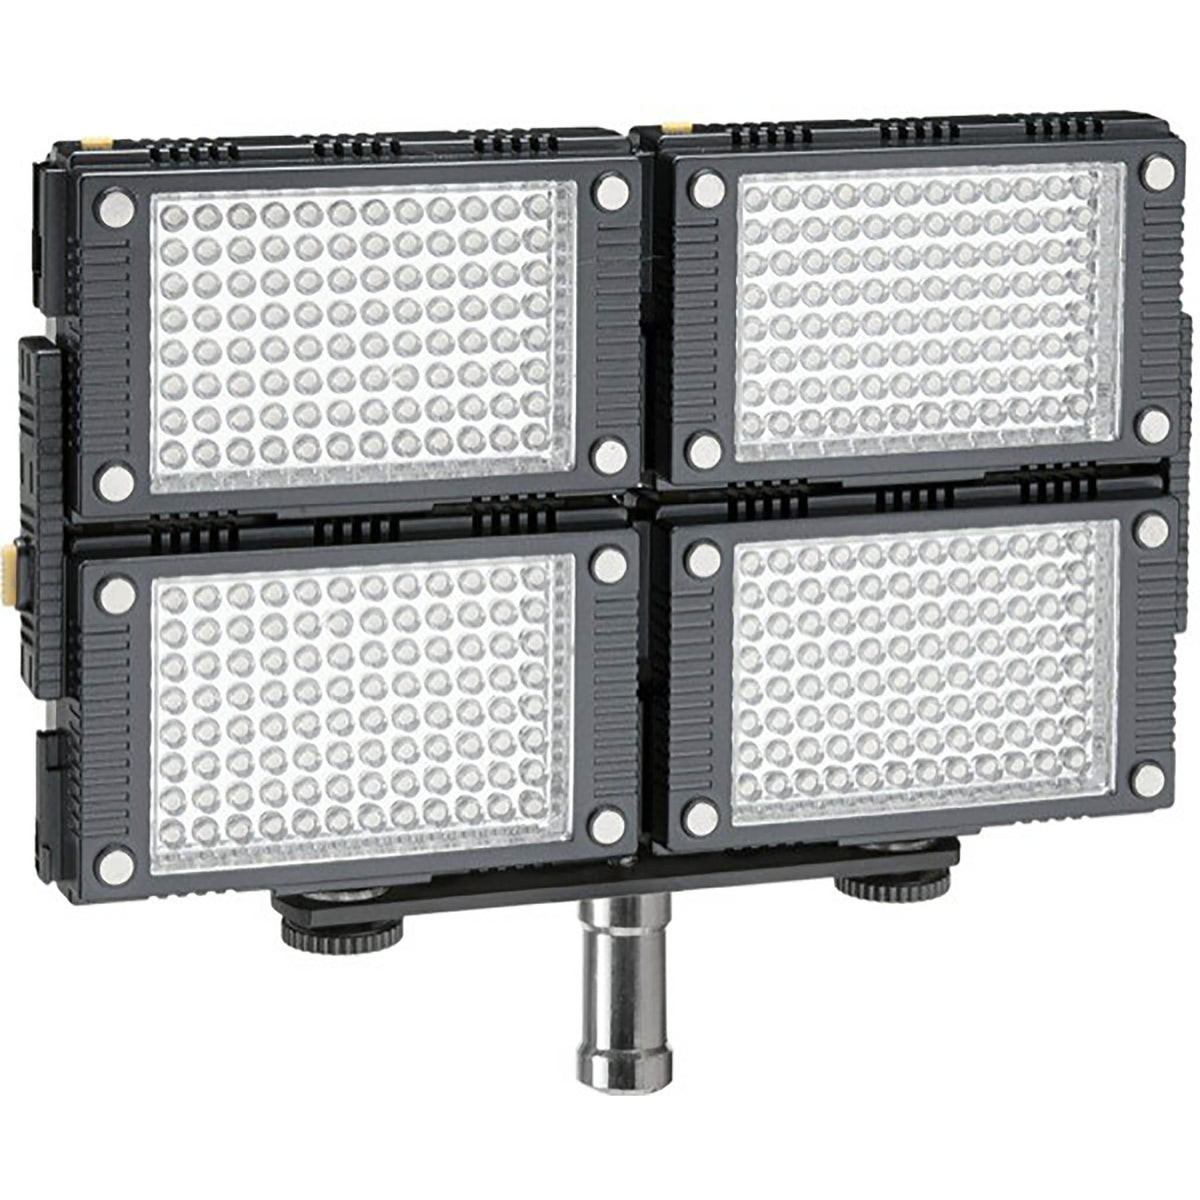 F&V Z96 LED light multi-unit panel